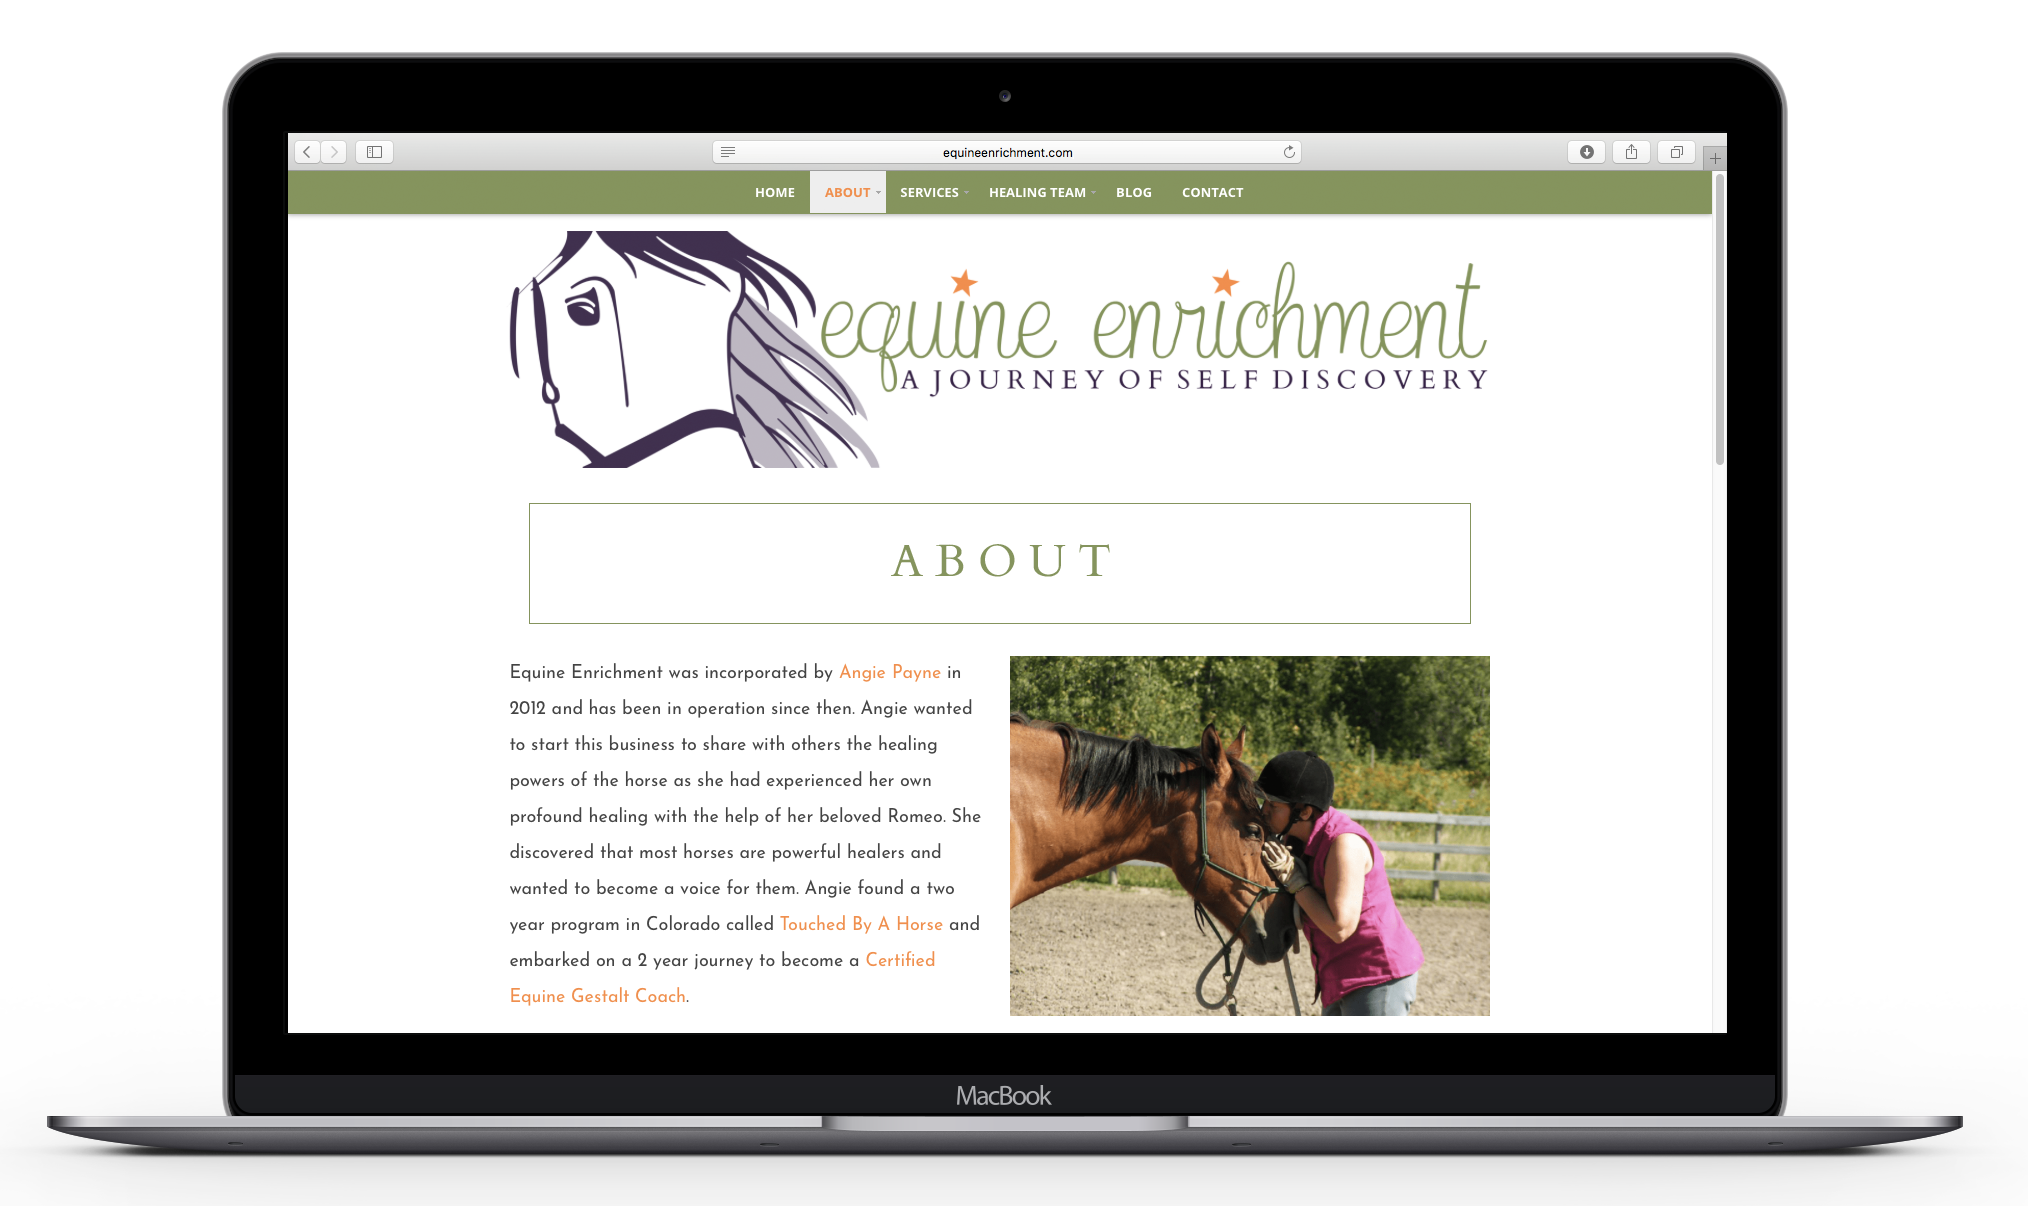 Equine Enrichment About Mockup.png